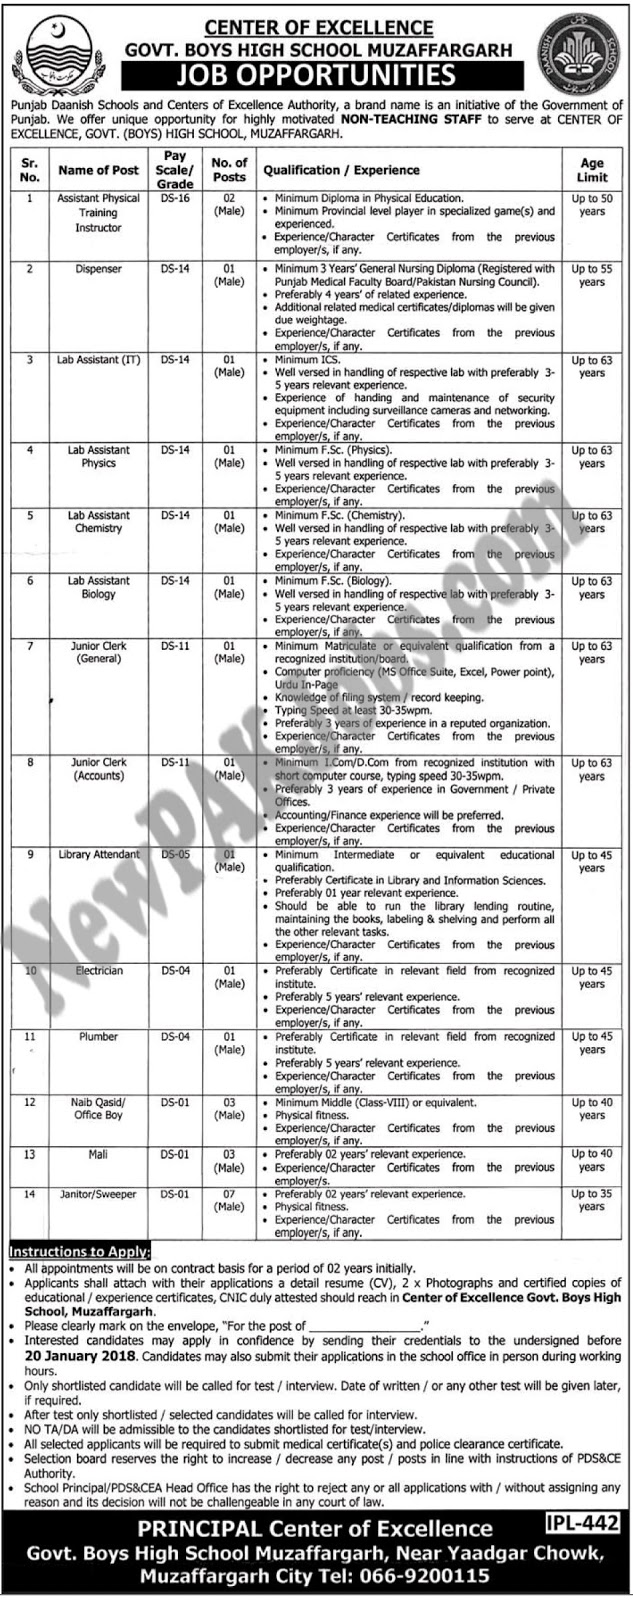 Punjab Daanish Schools Jobs in Muzaffargarh 12 Jan 2018